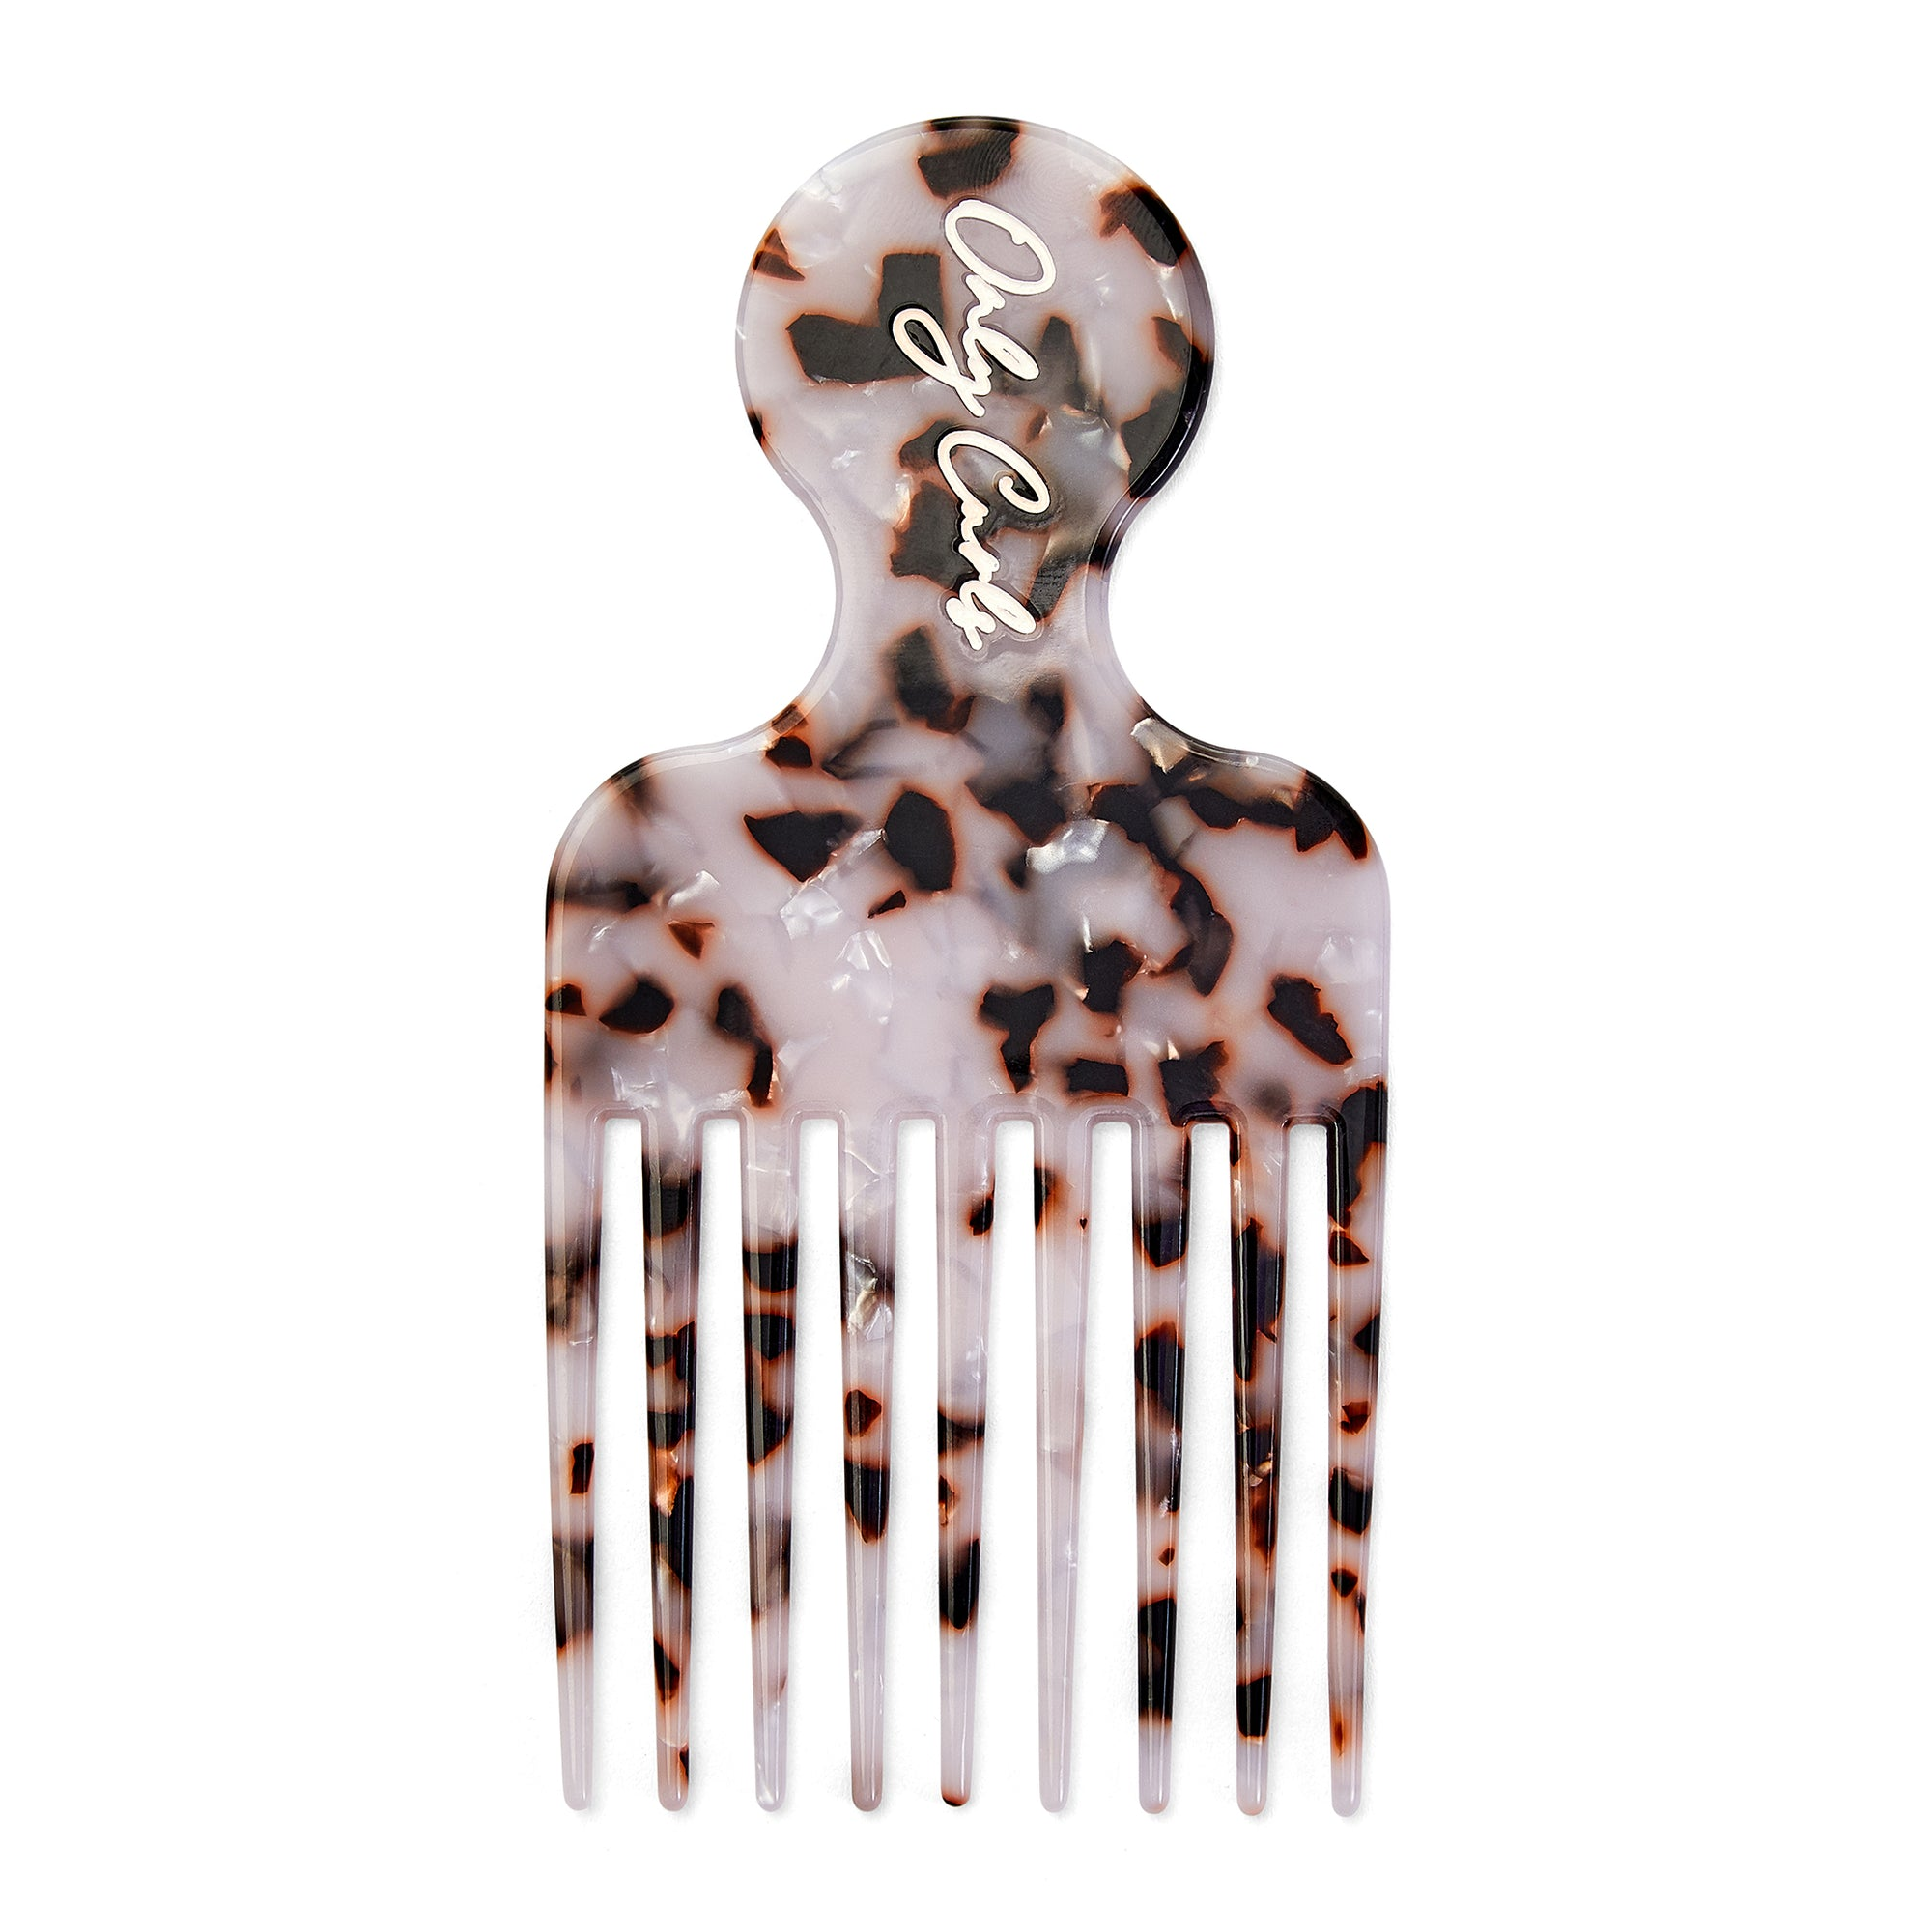 Only Curls Black Speckle Afro Comb - Only Curls